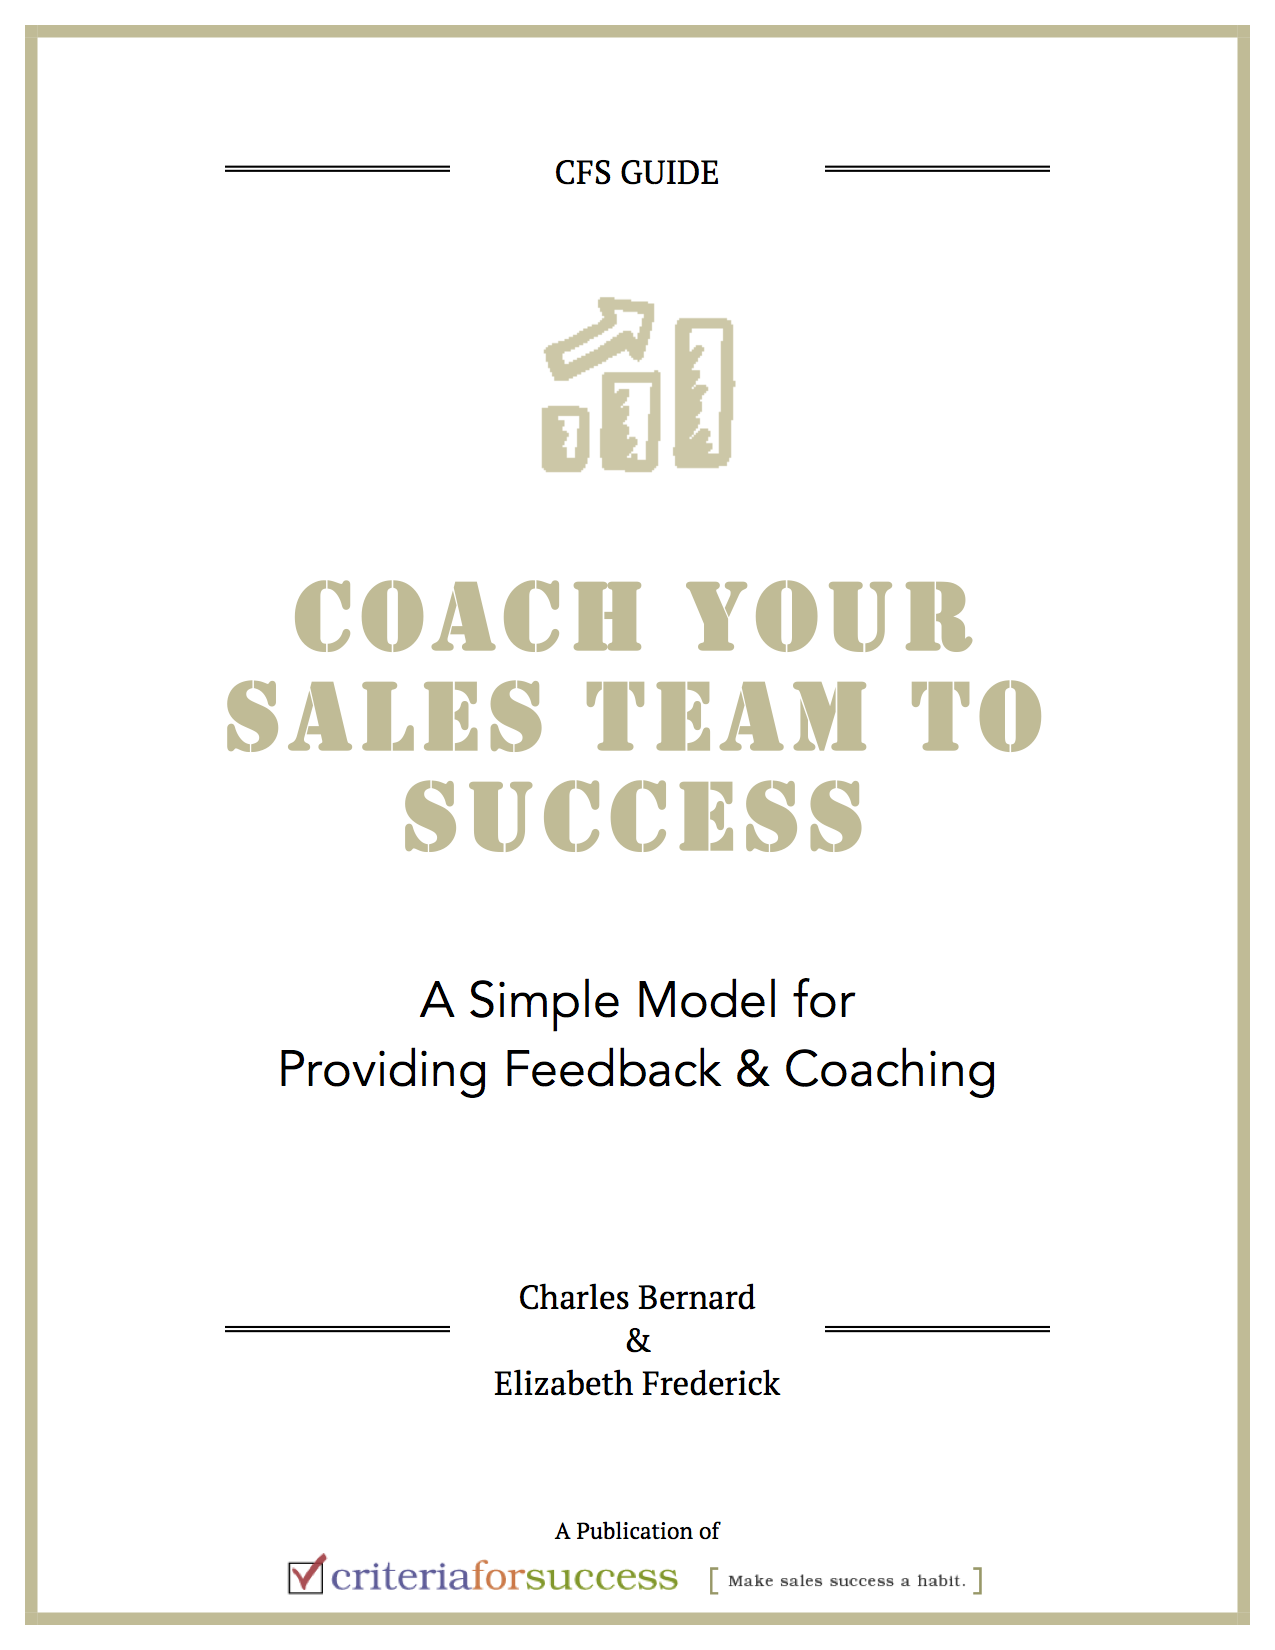 CFS_Ebook_-_Coach_Your_Sales_Team_to_Success_-_Cover